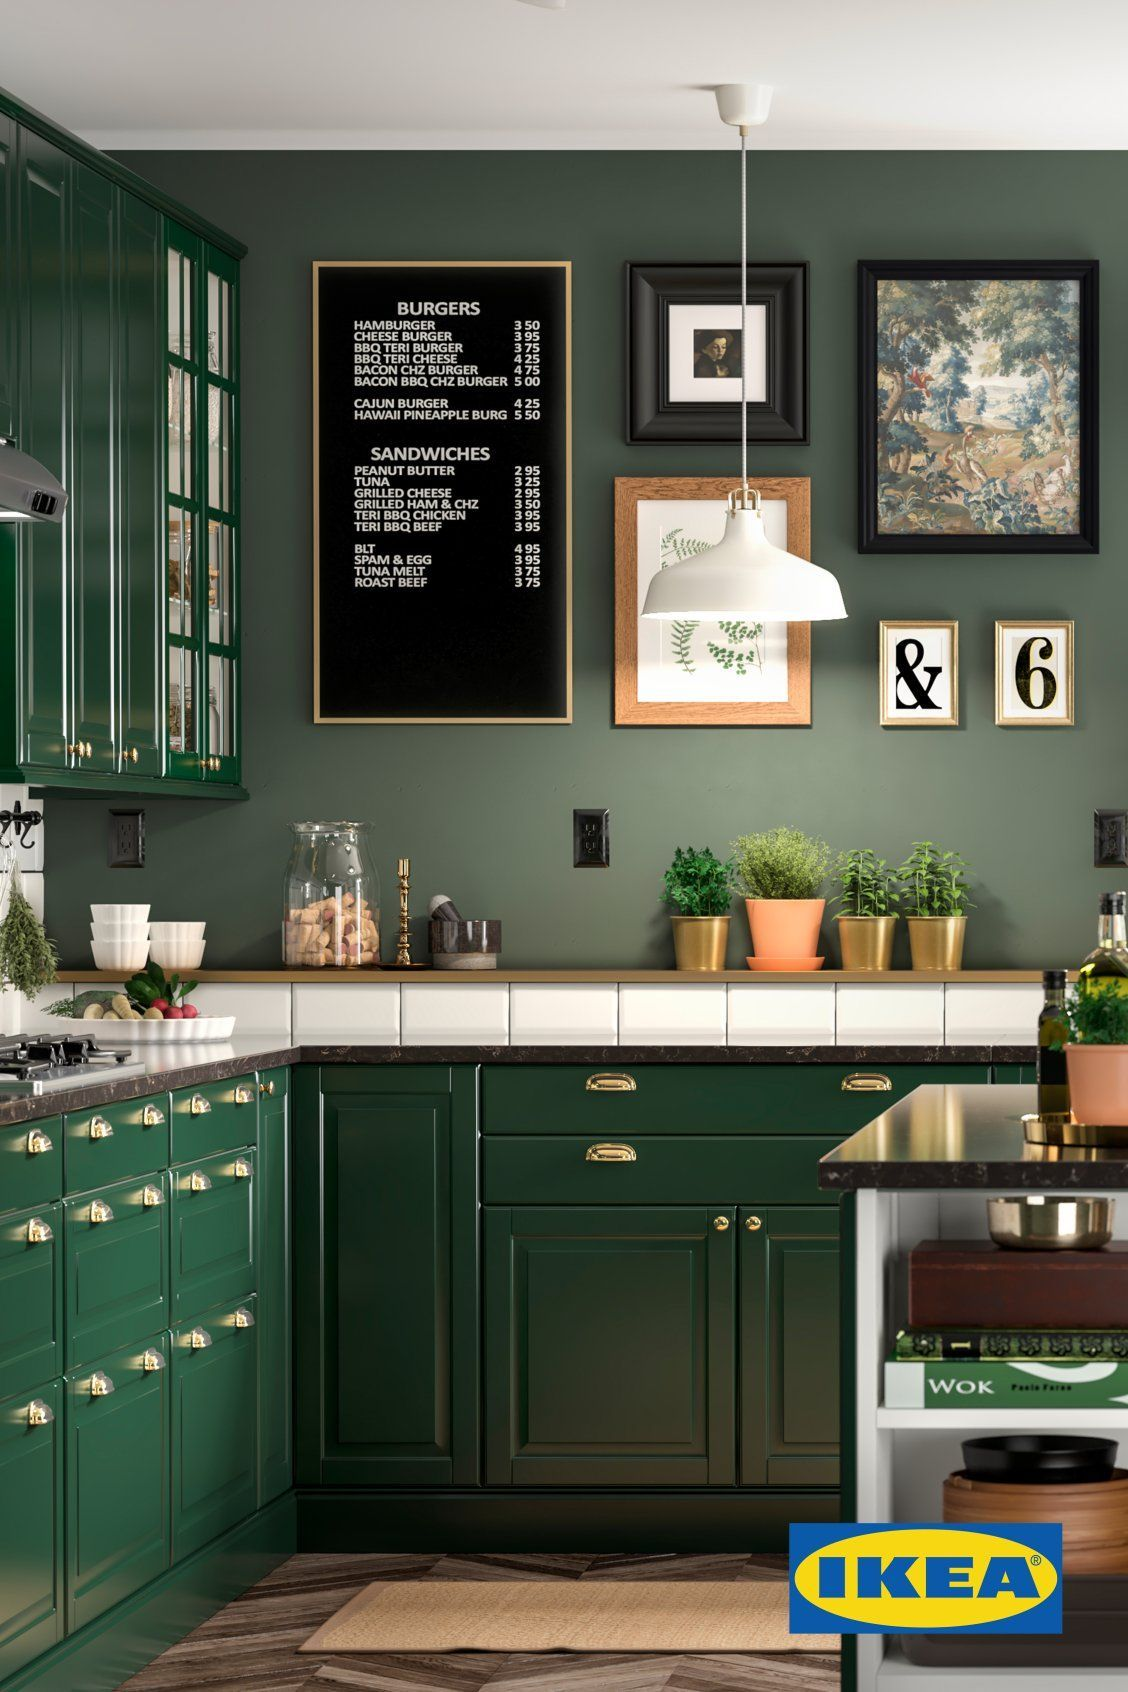 Ikea Kitchens Browse Plan Design Browse Design Ikea Kitchens Plan In 2020 Green Kitchen Cabinets Dark Green Kitchen Green Kitchen Decor